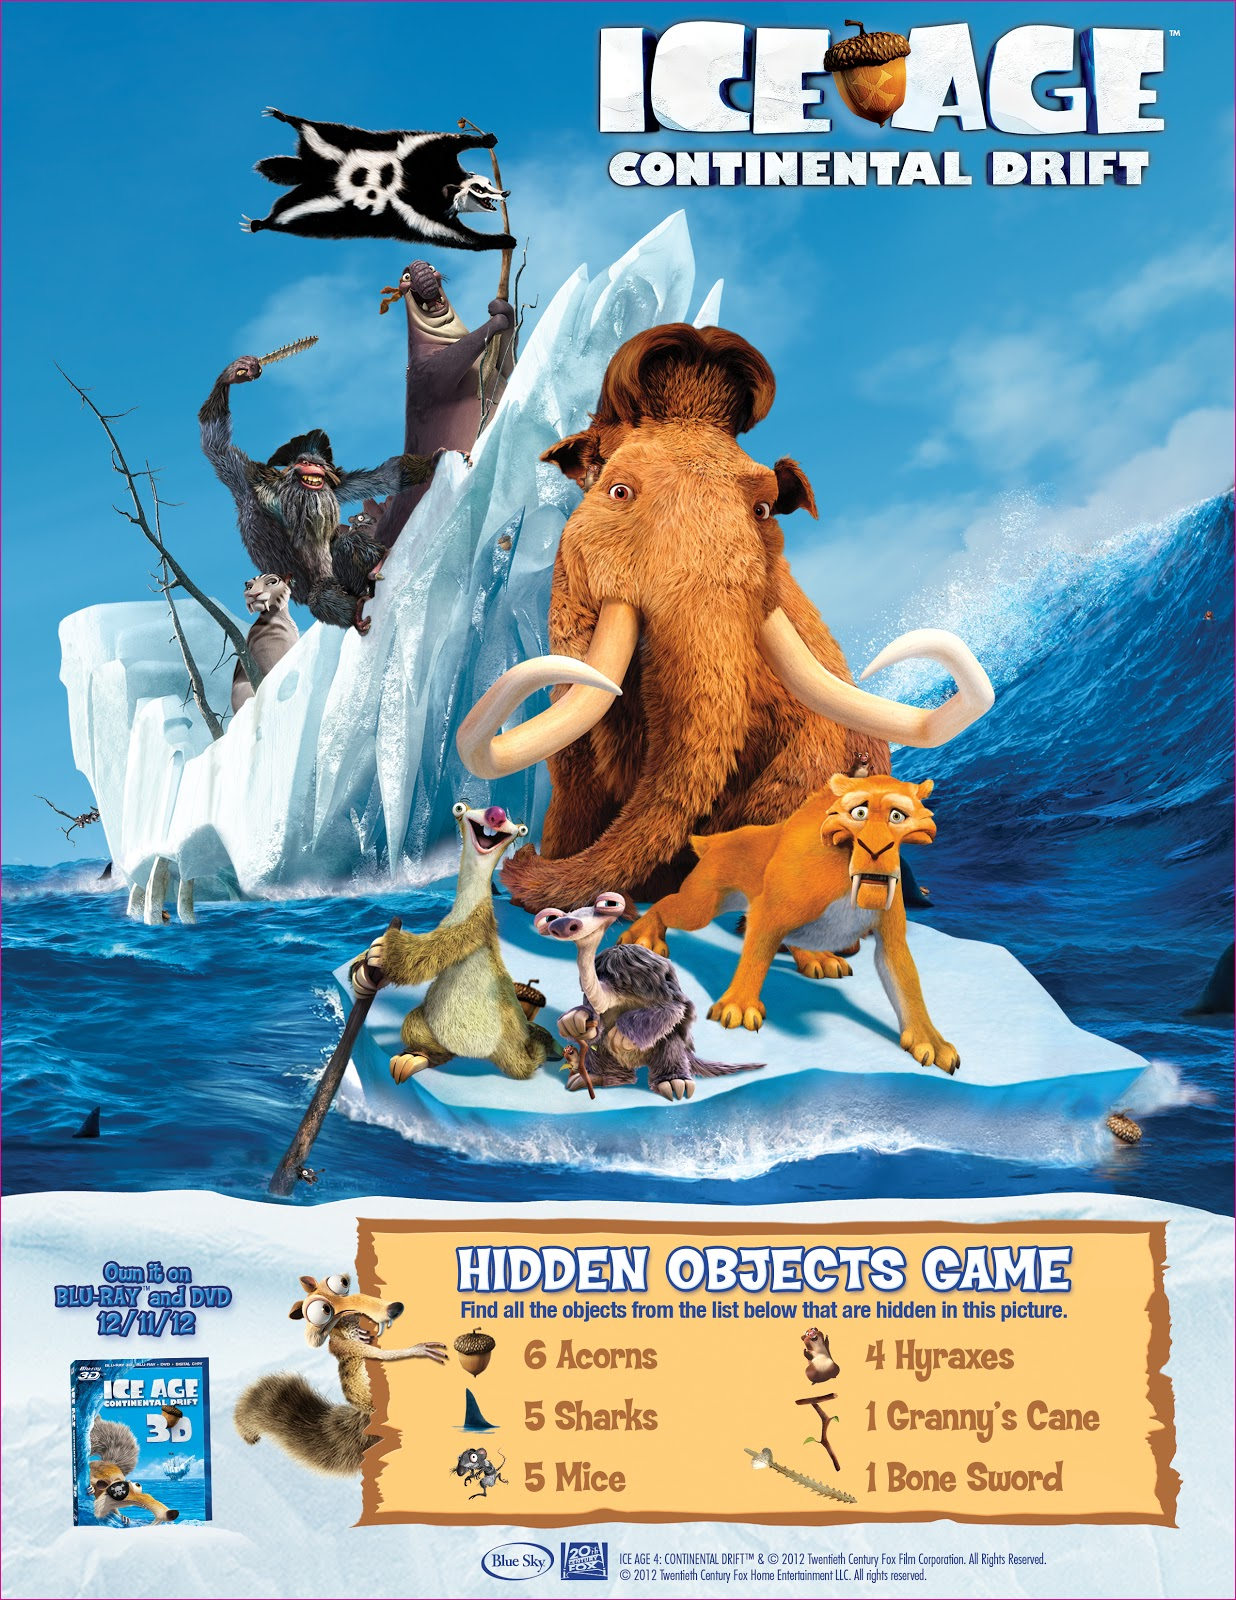 Free Ice Age Continental Drift Holiday E Card And Printable Activity Sheets